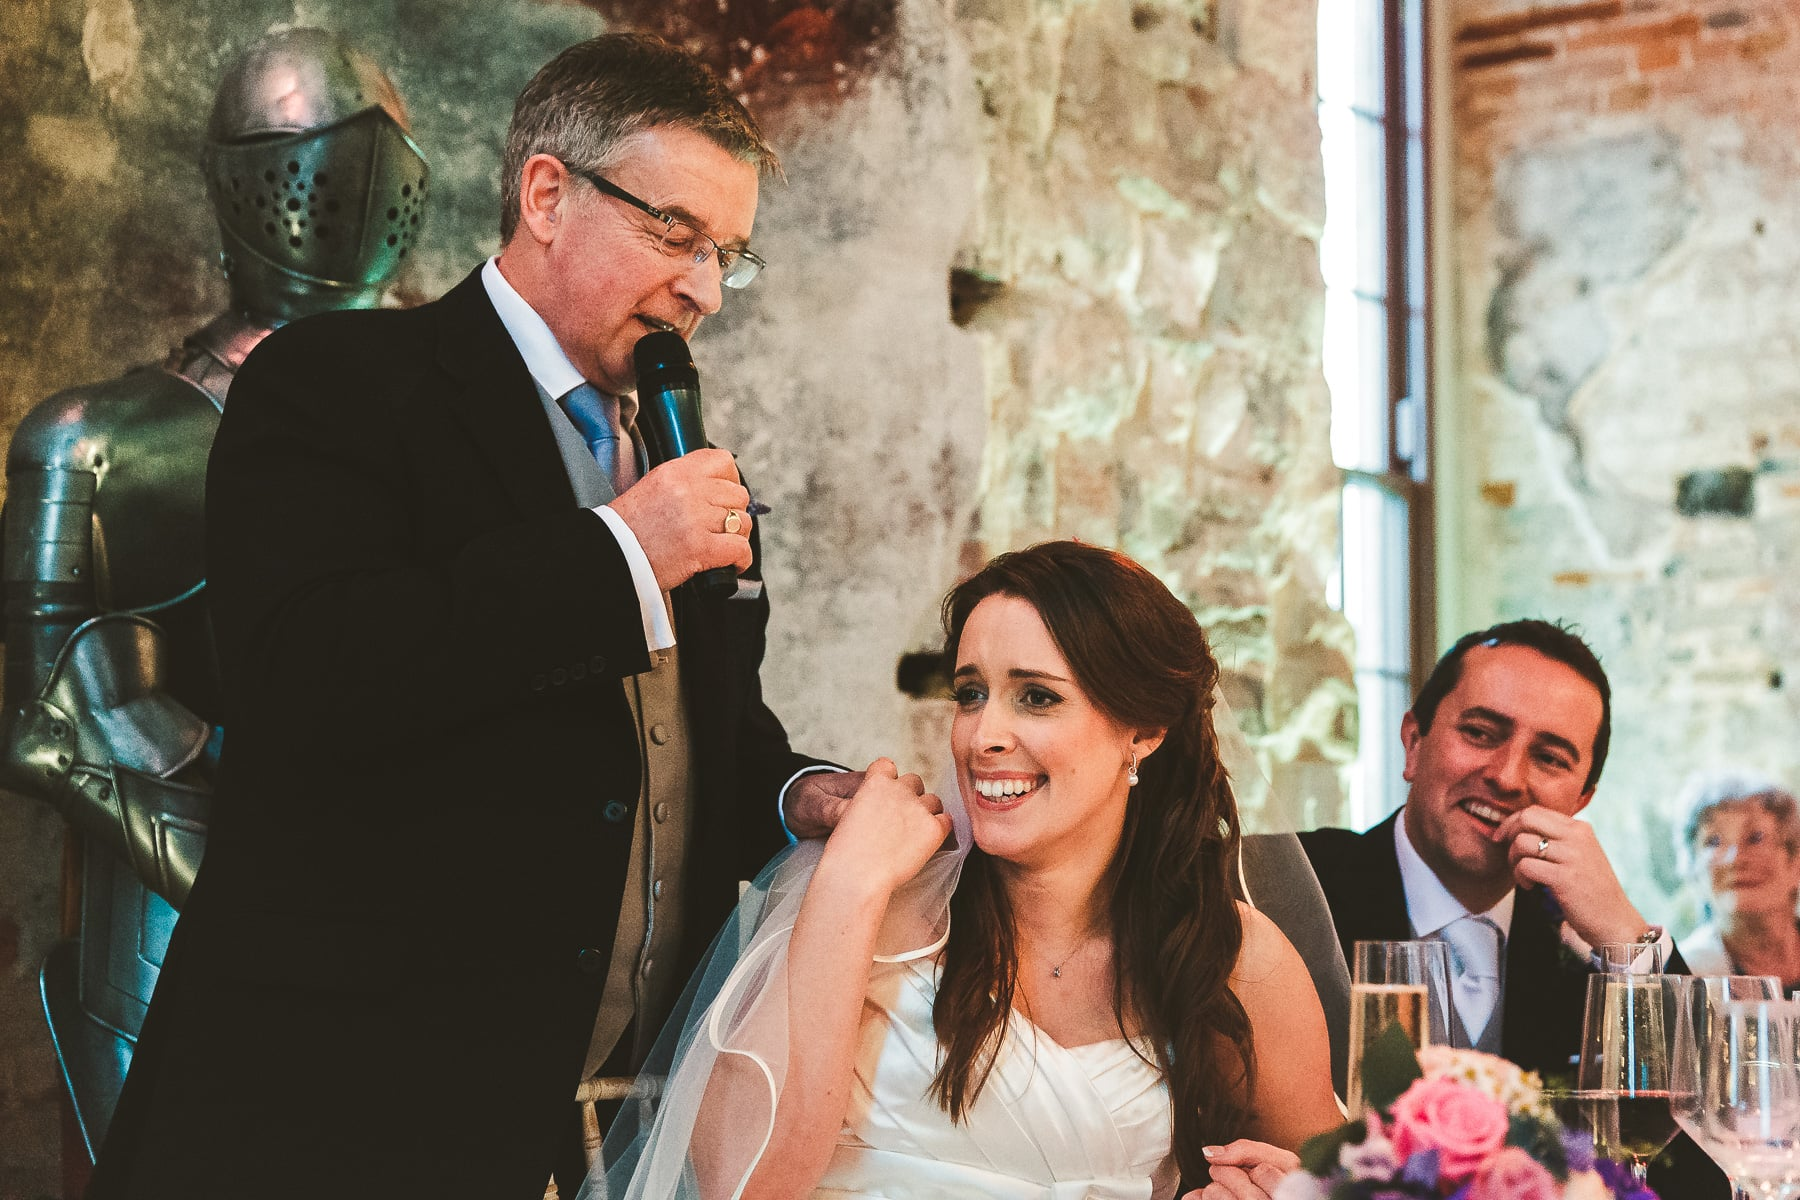 Wedding-speech-Lulworth-Castle-wedding-photography